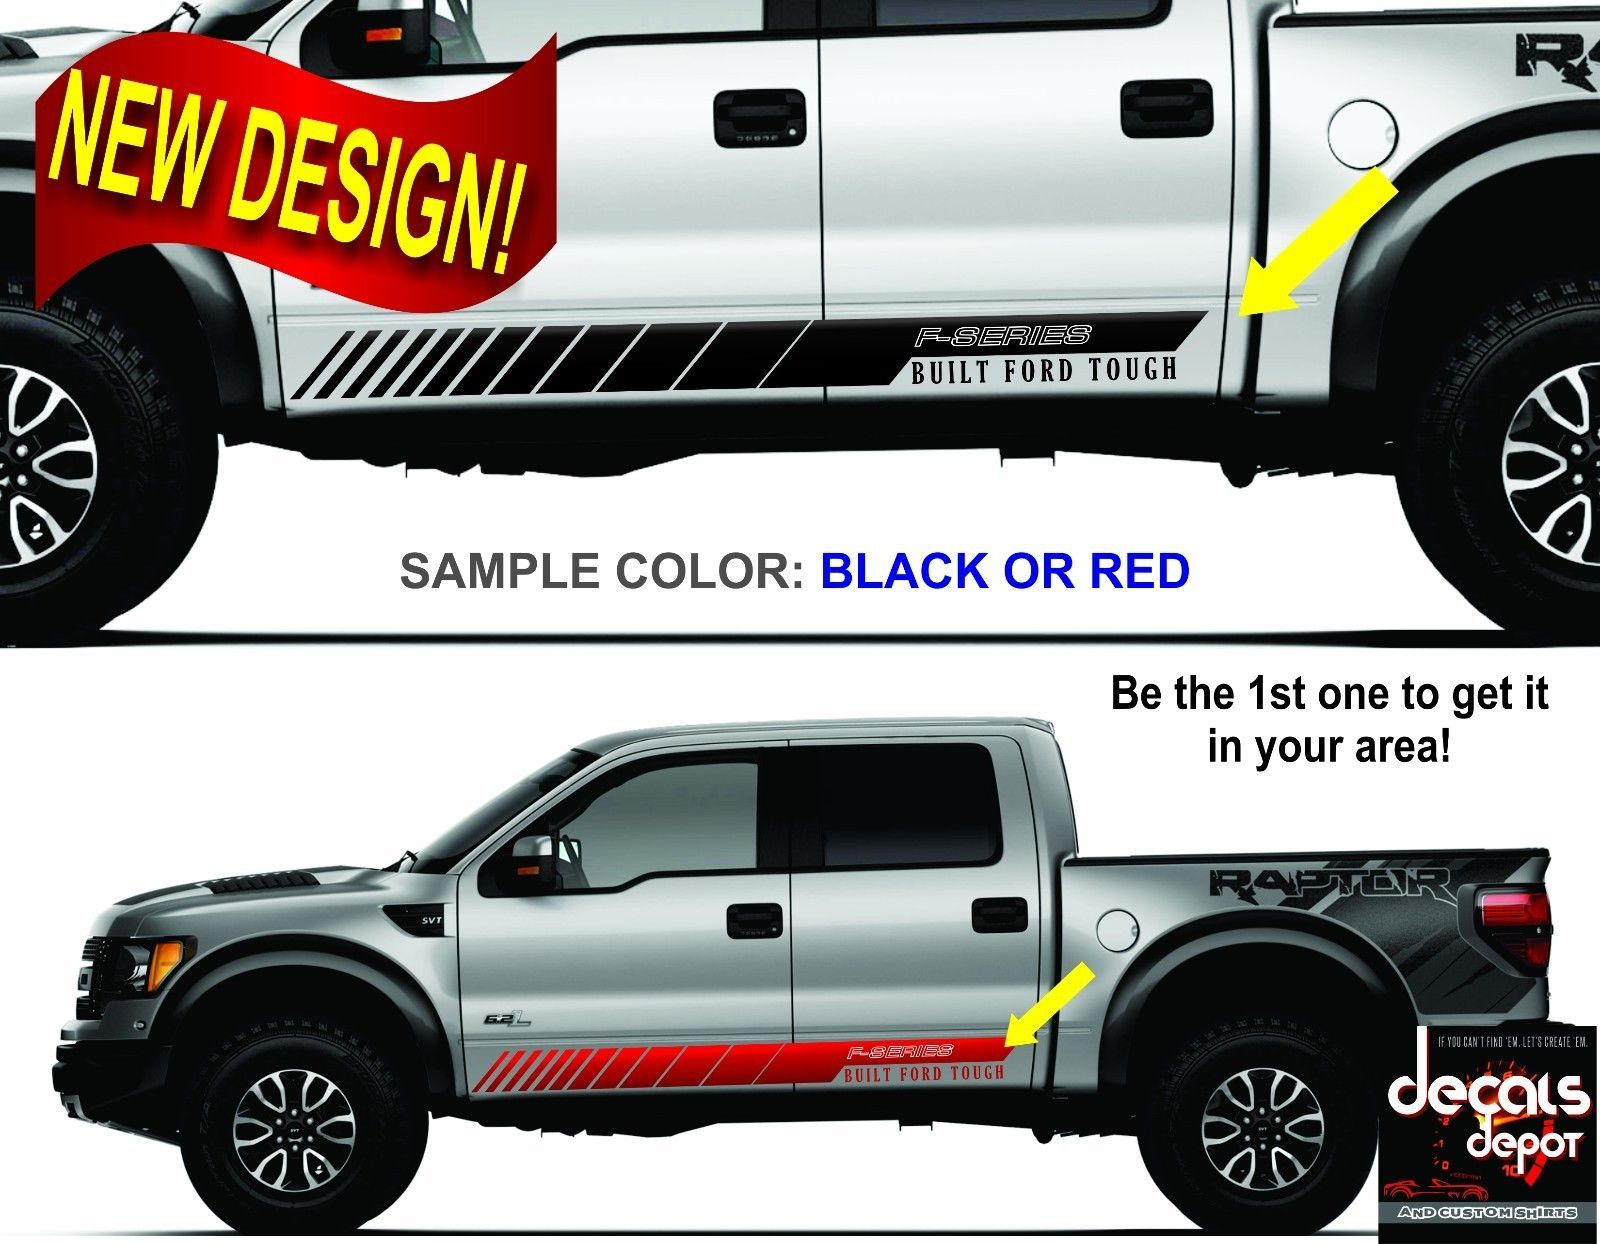 Ford F 150 250 Hd Xl Xlt Sxt Platinum King Ranch Crew Cab Vinyl Decal Stripes Ebay Ford F150 Built Ford Tough Crew Cab